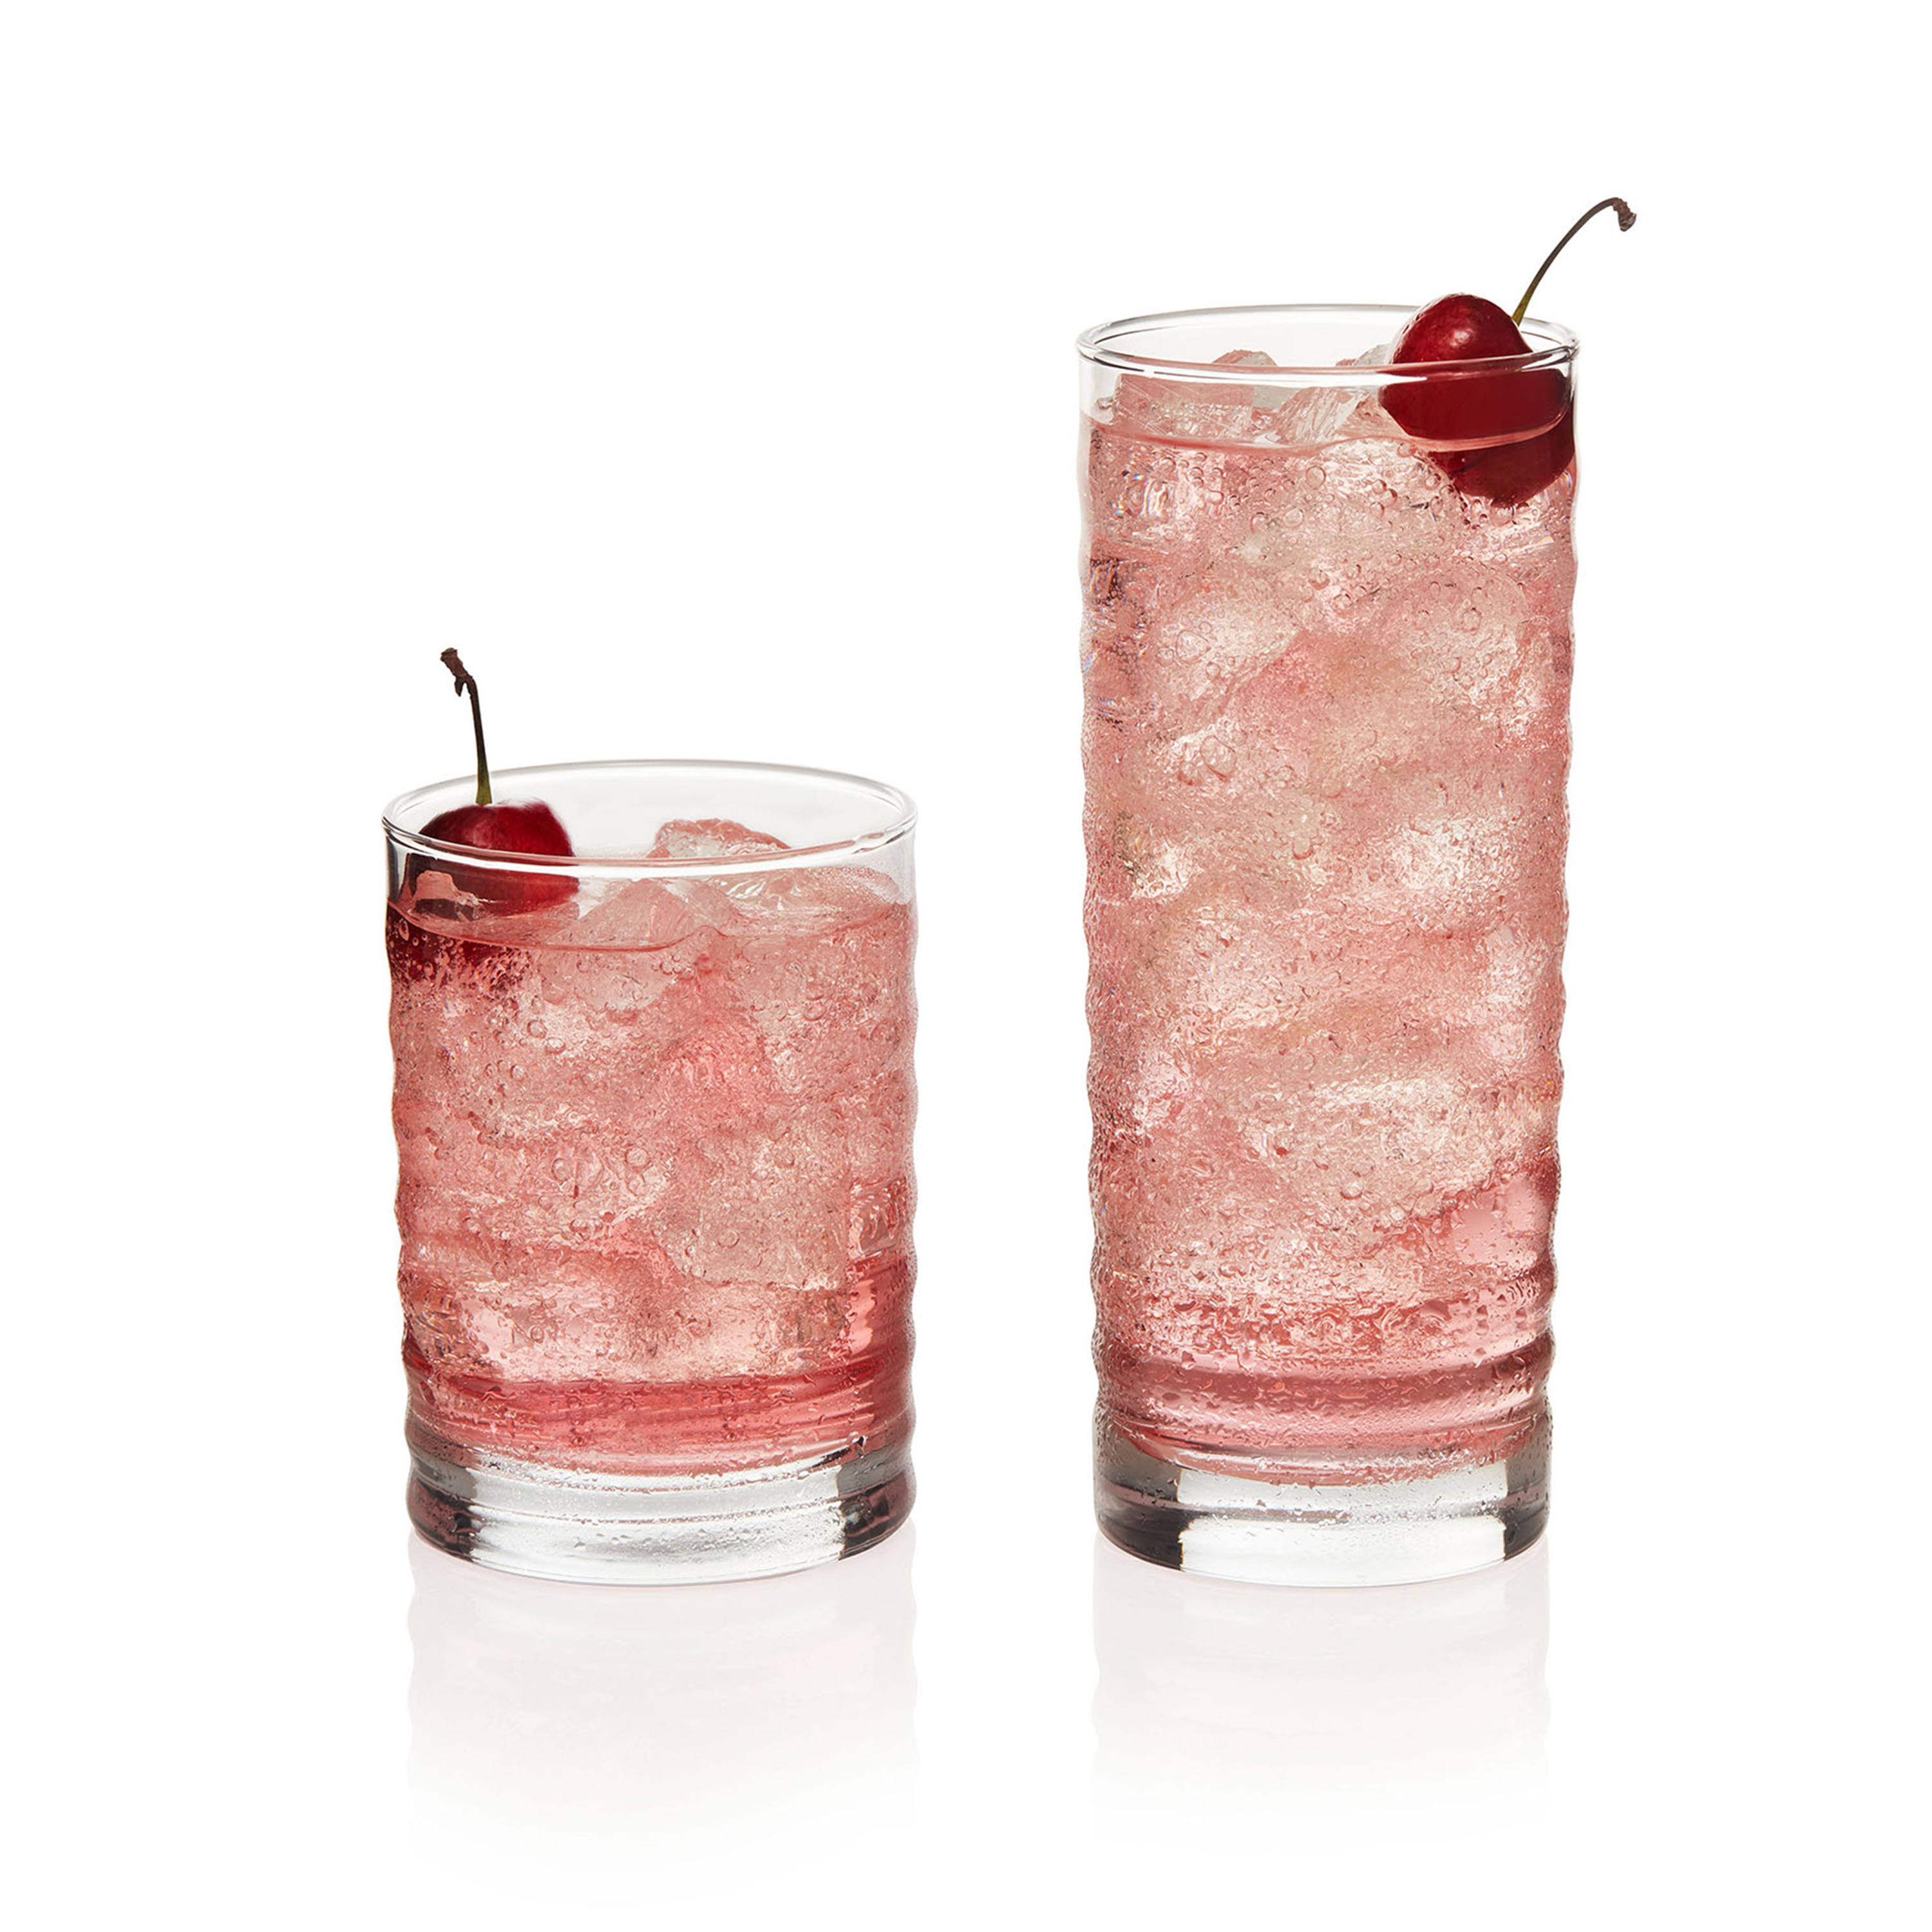 Libbey Pueblo 16-piece Glass Set